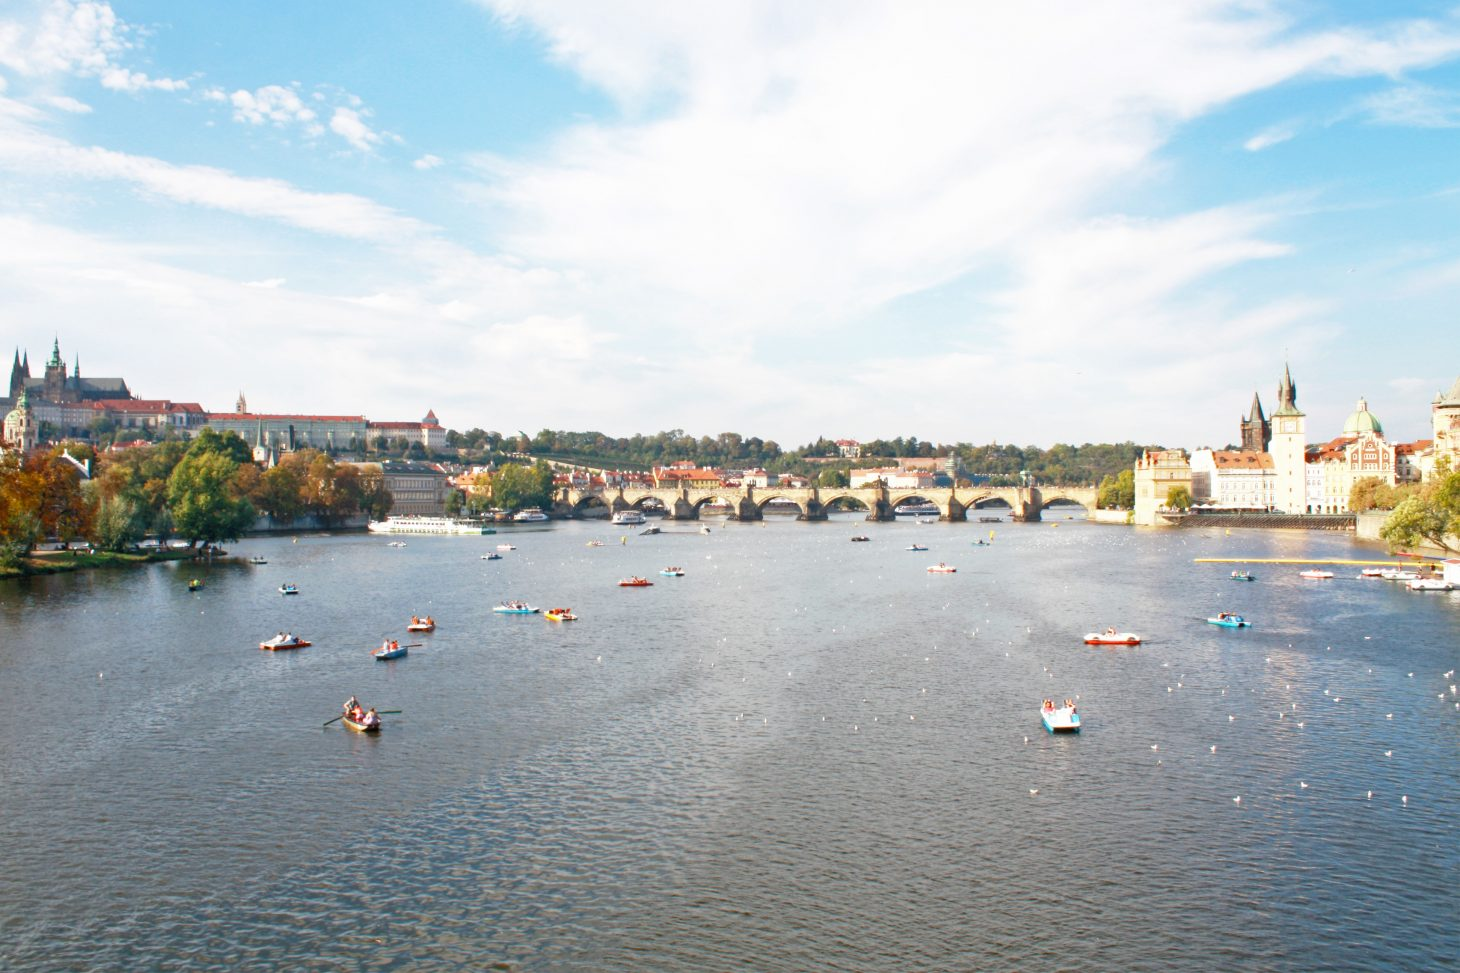 Charles bridge over Vltava and Prague castle